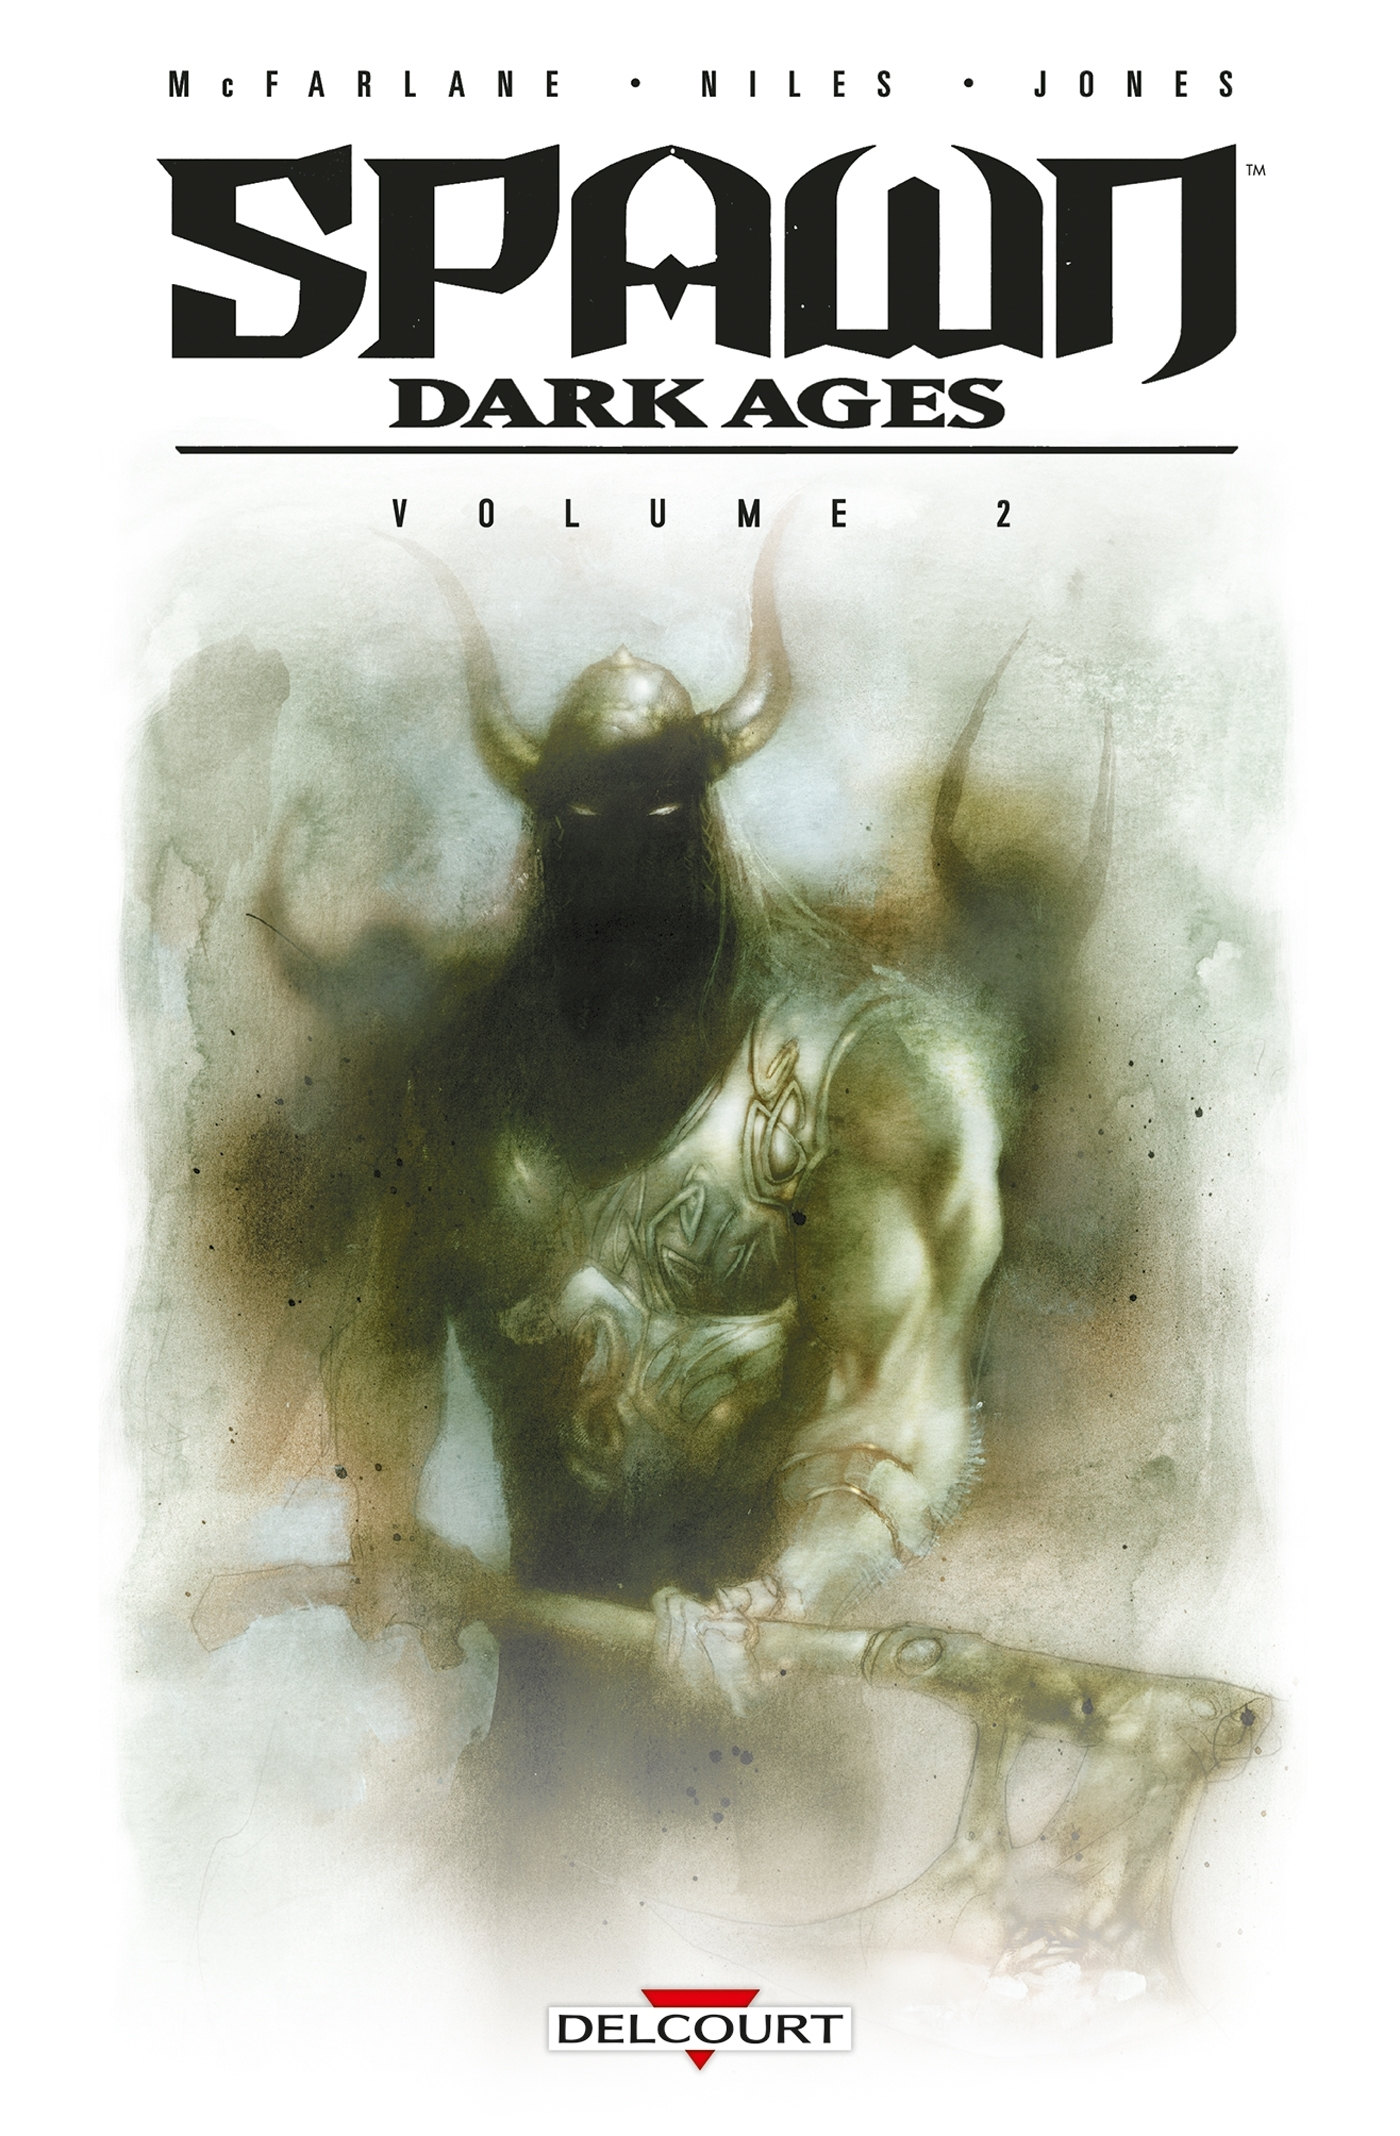 2 - SPAWN DARK AGES - VOLUME II